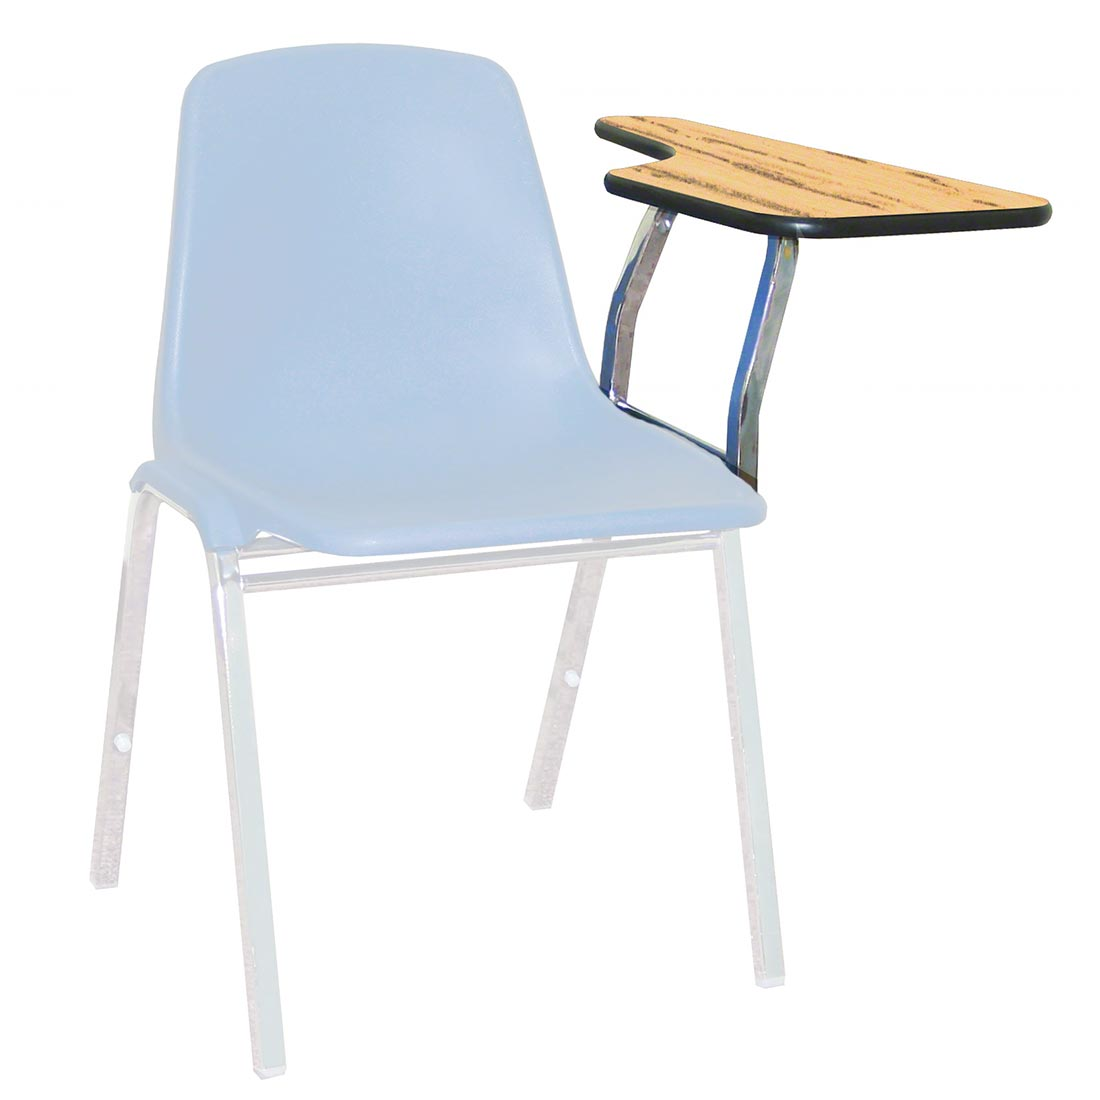 public seating chairs outdoor furniture nz egg chair national 8100 series tablet arms for stack